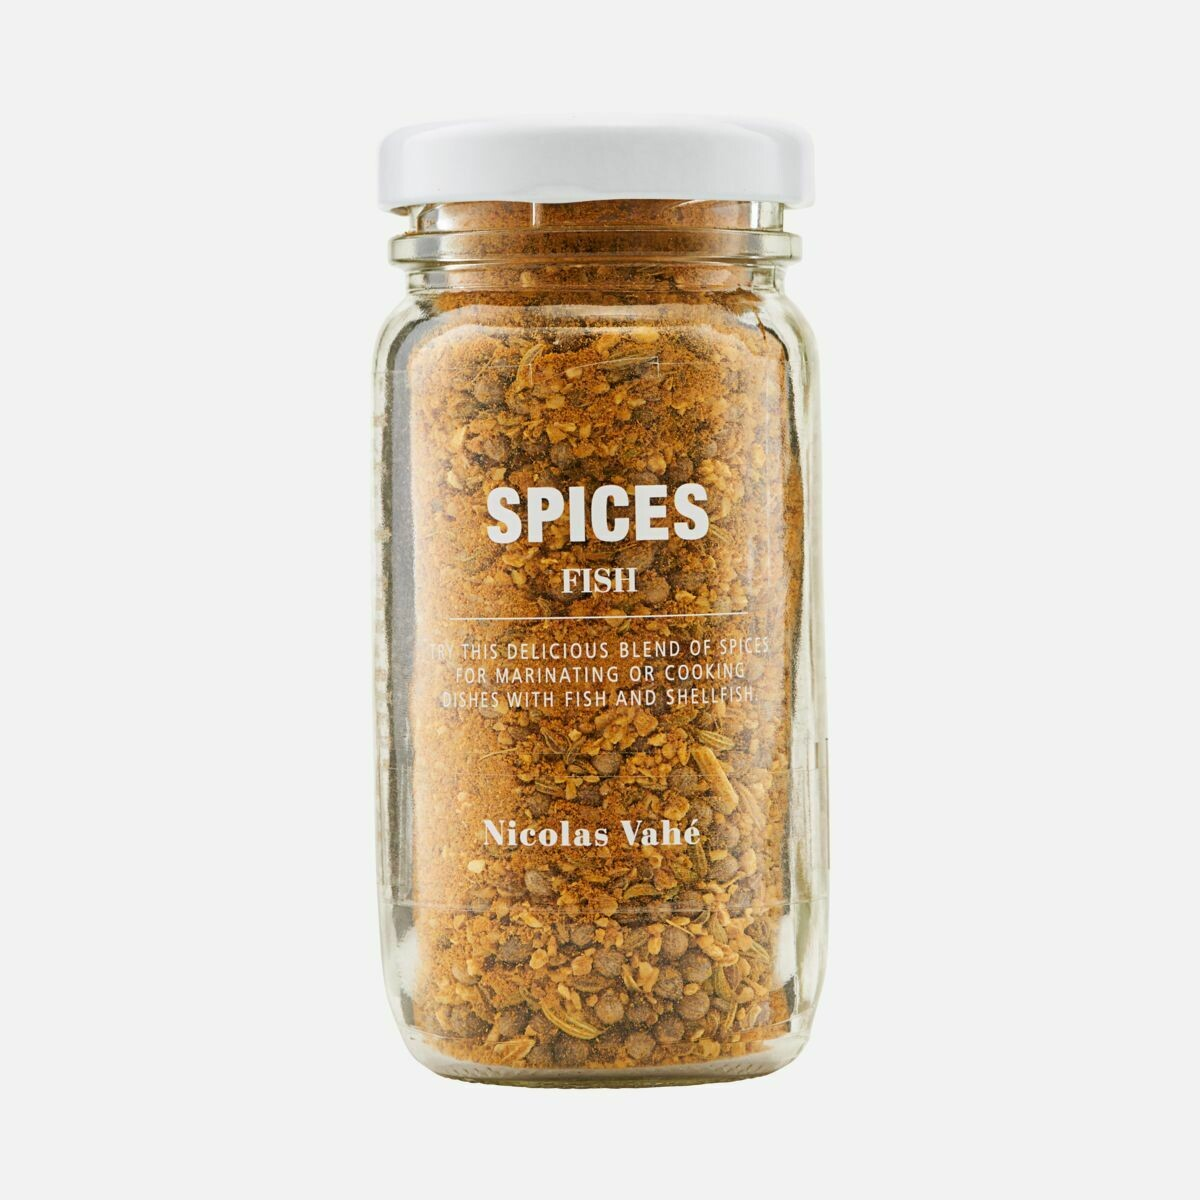 Spices, Fish